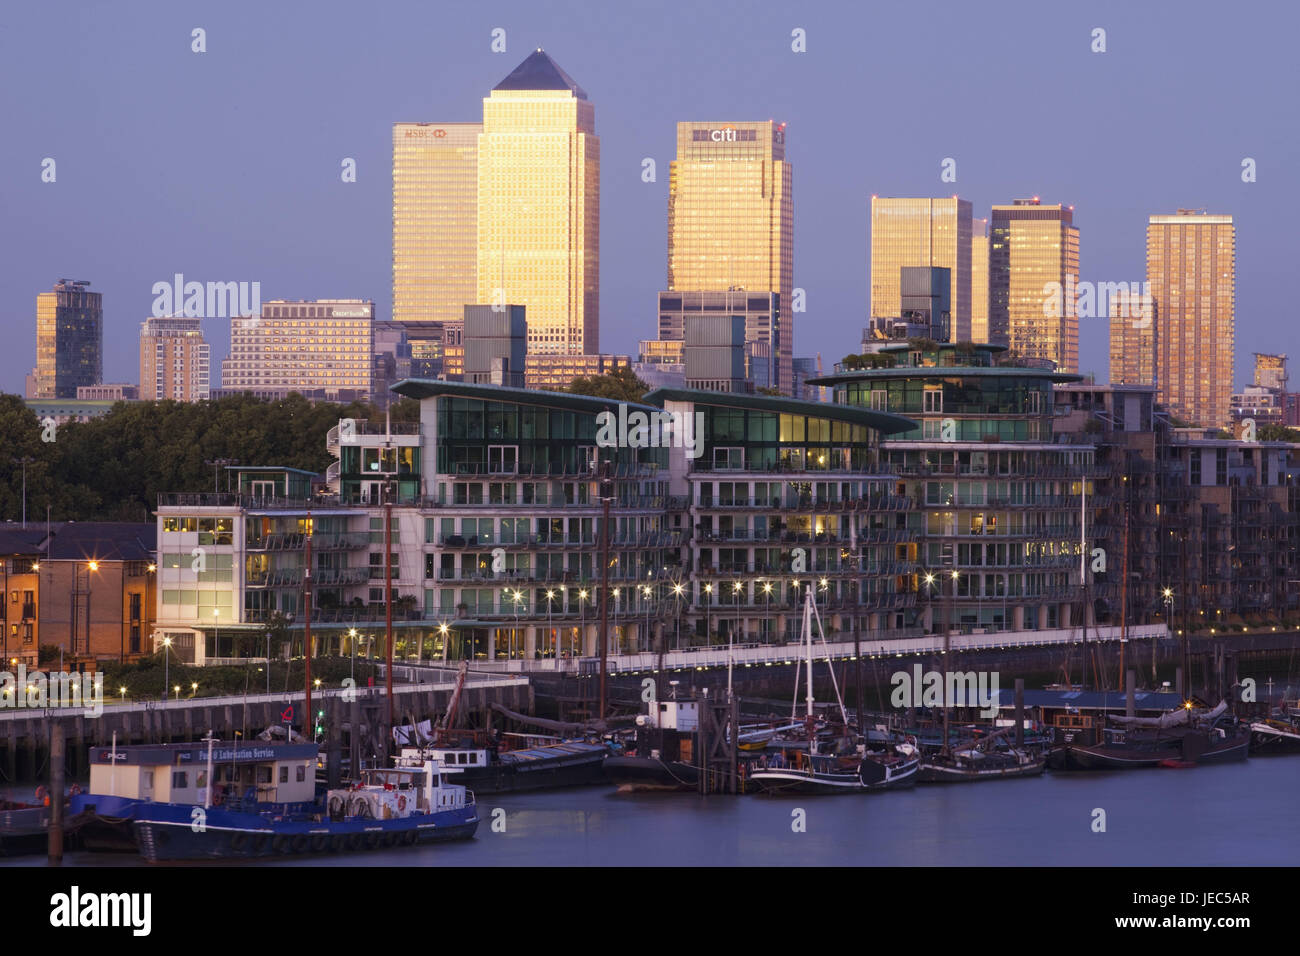 England, London, dock country, Canary Wharf, skyscraper, residential houses, the Thames, dusk, town, architecture, Stock Photo